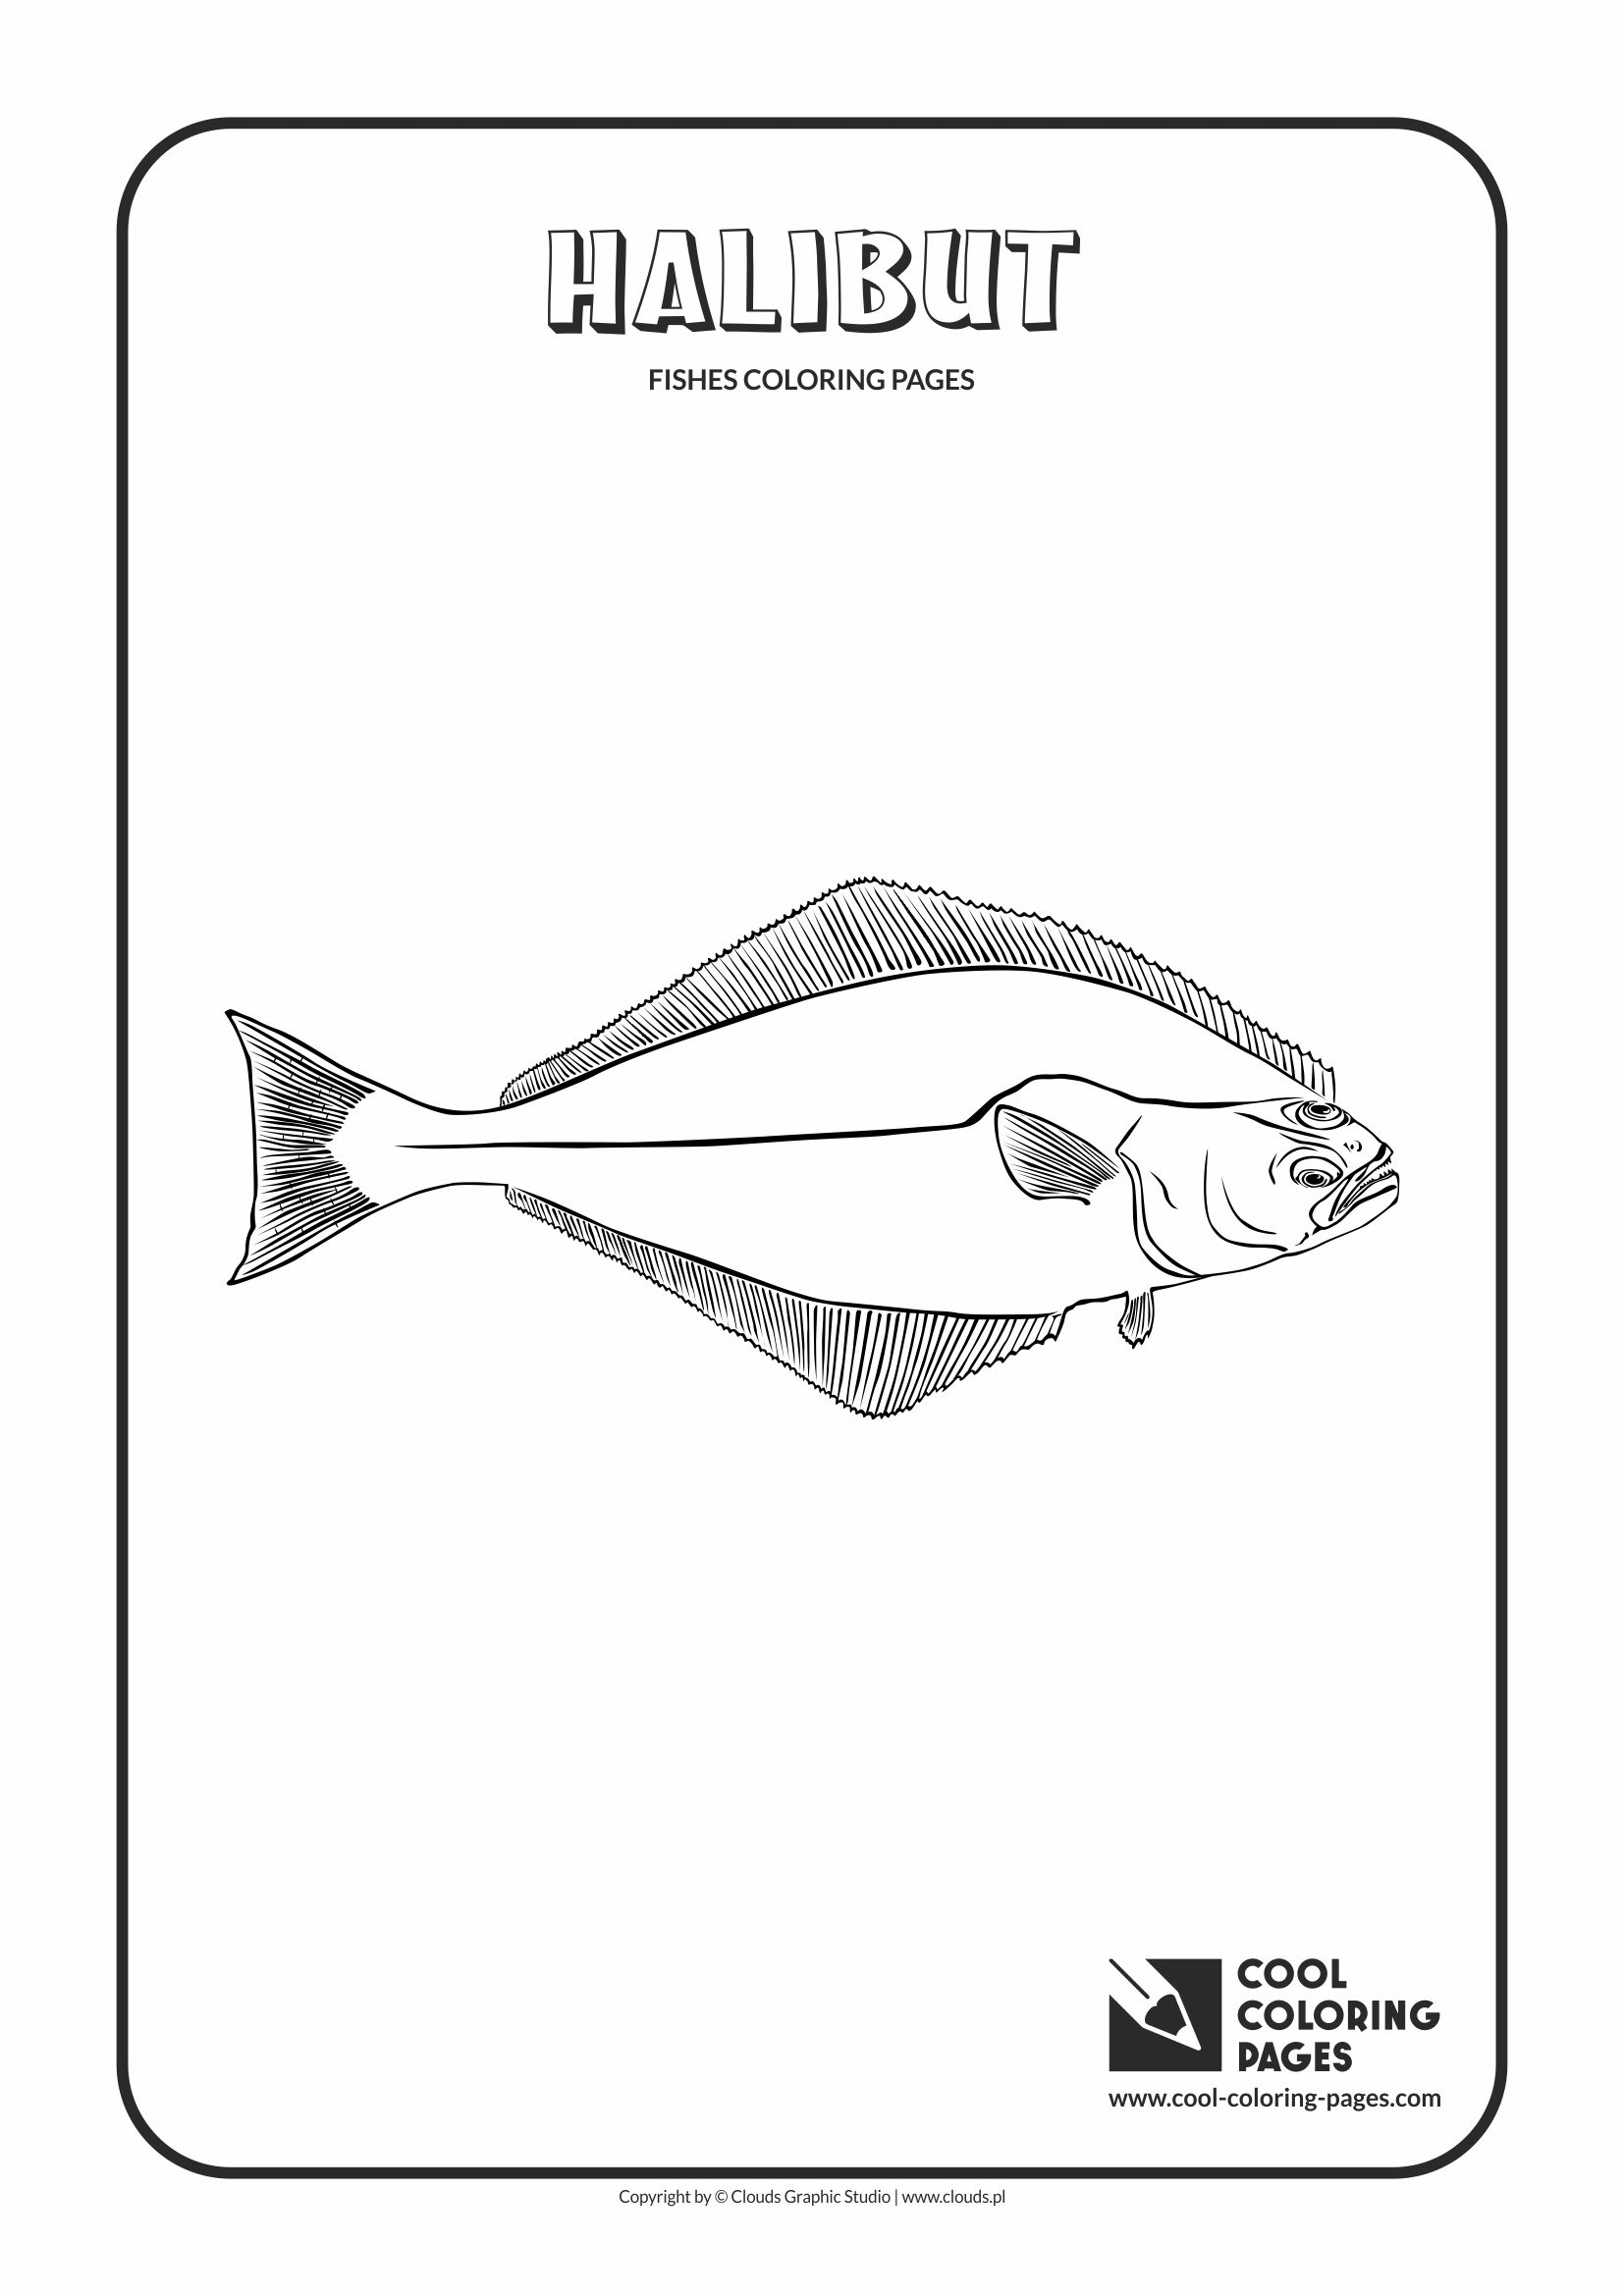 Cool Coloring Pages - Animals / Halibut / Coloring page with halibut